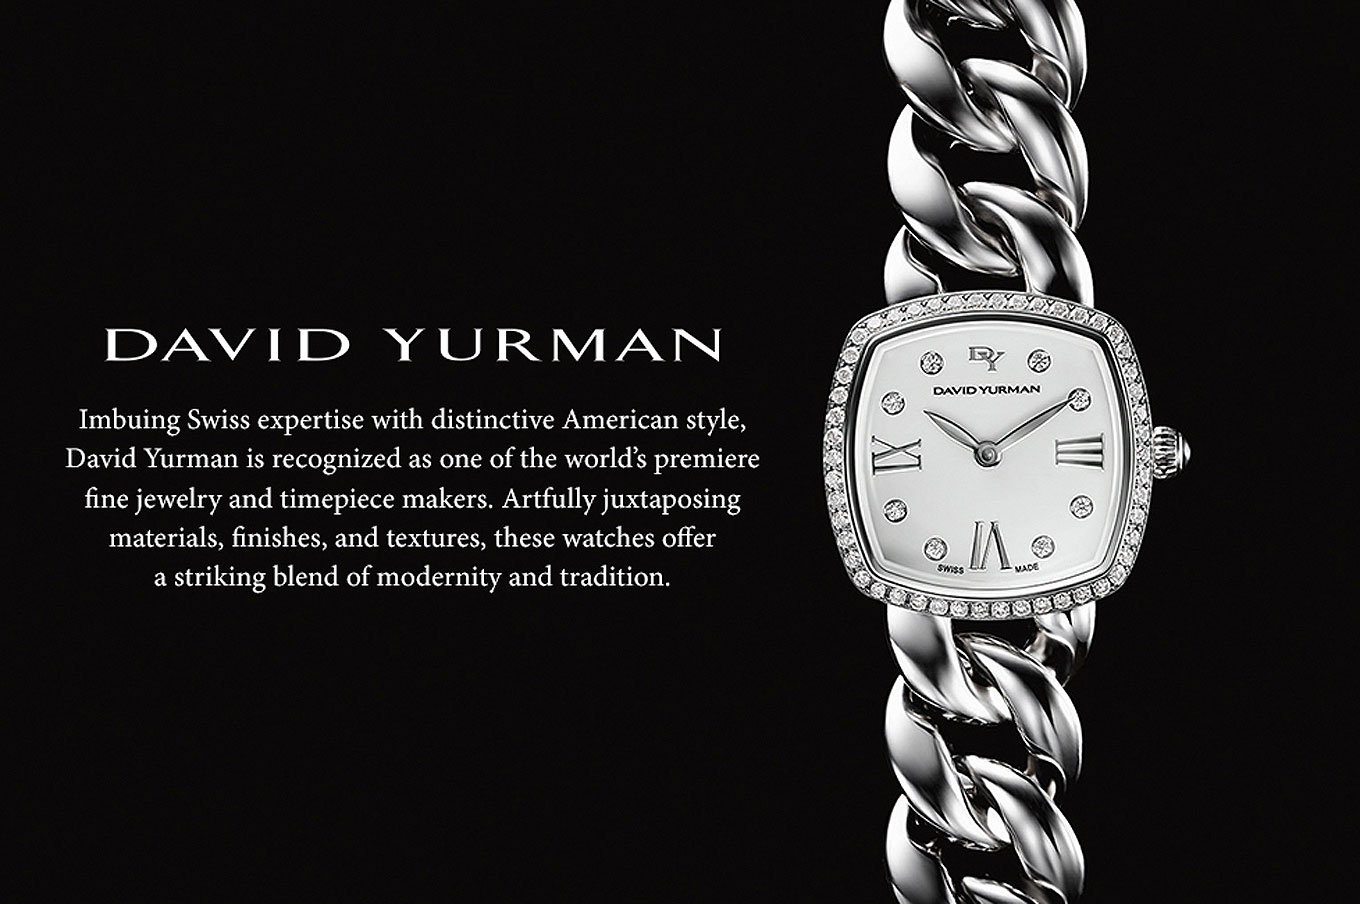 David Yurman Swiss expertise